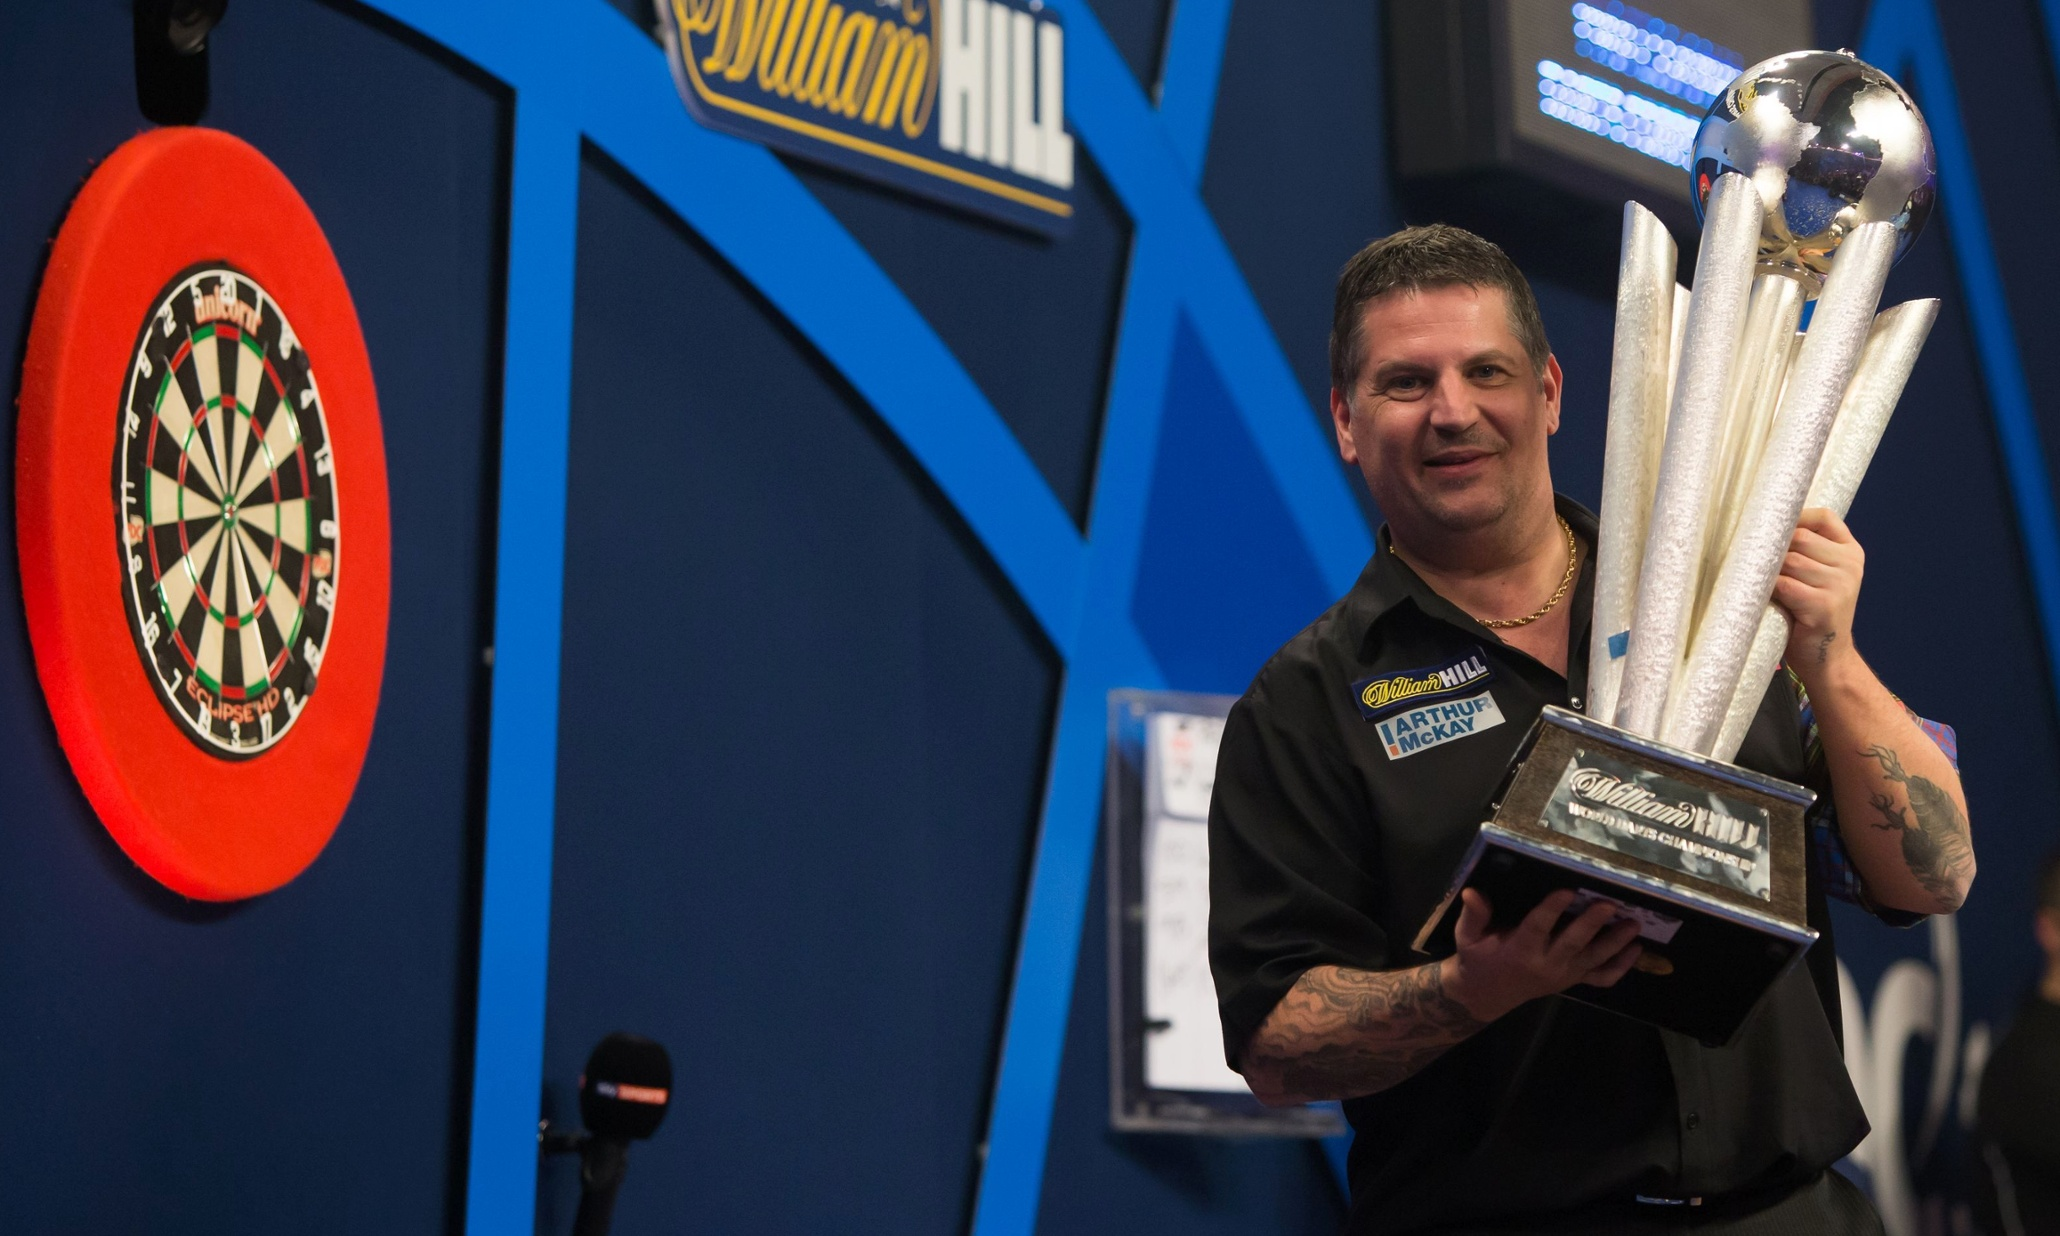 Gary Anderson beats Phil Taylor to be crowned world champion | Sport | The Guardian